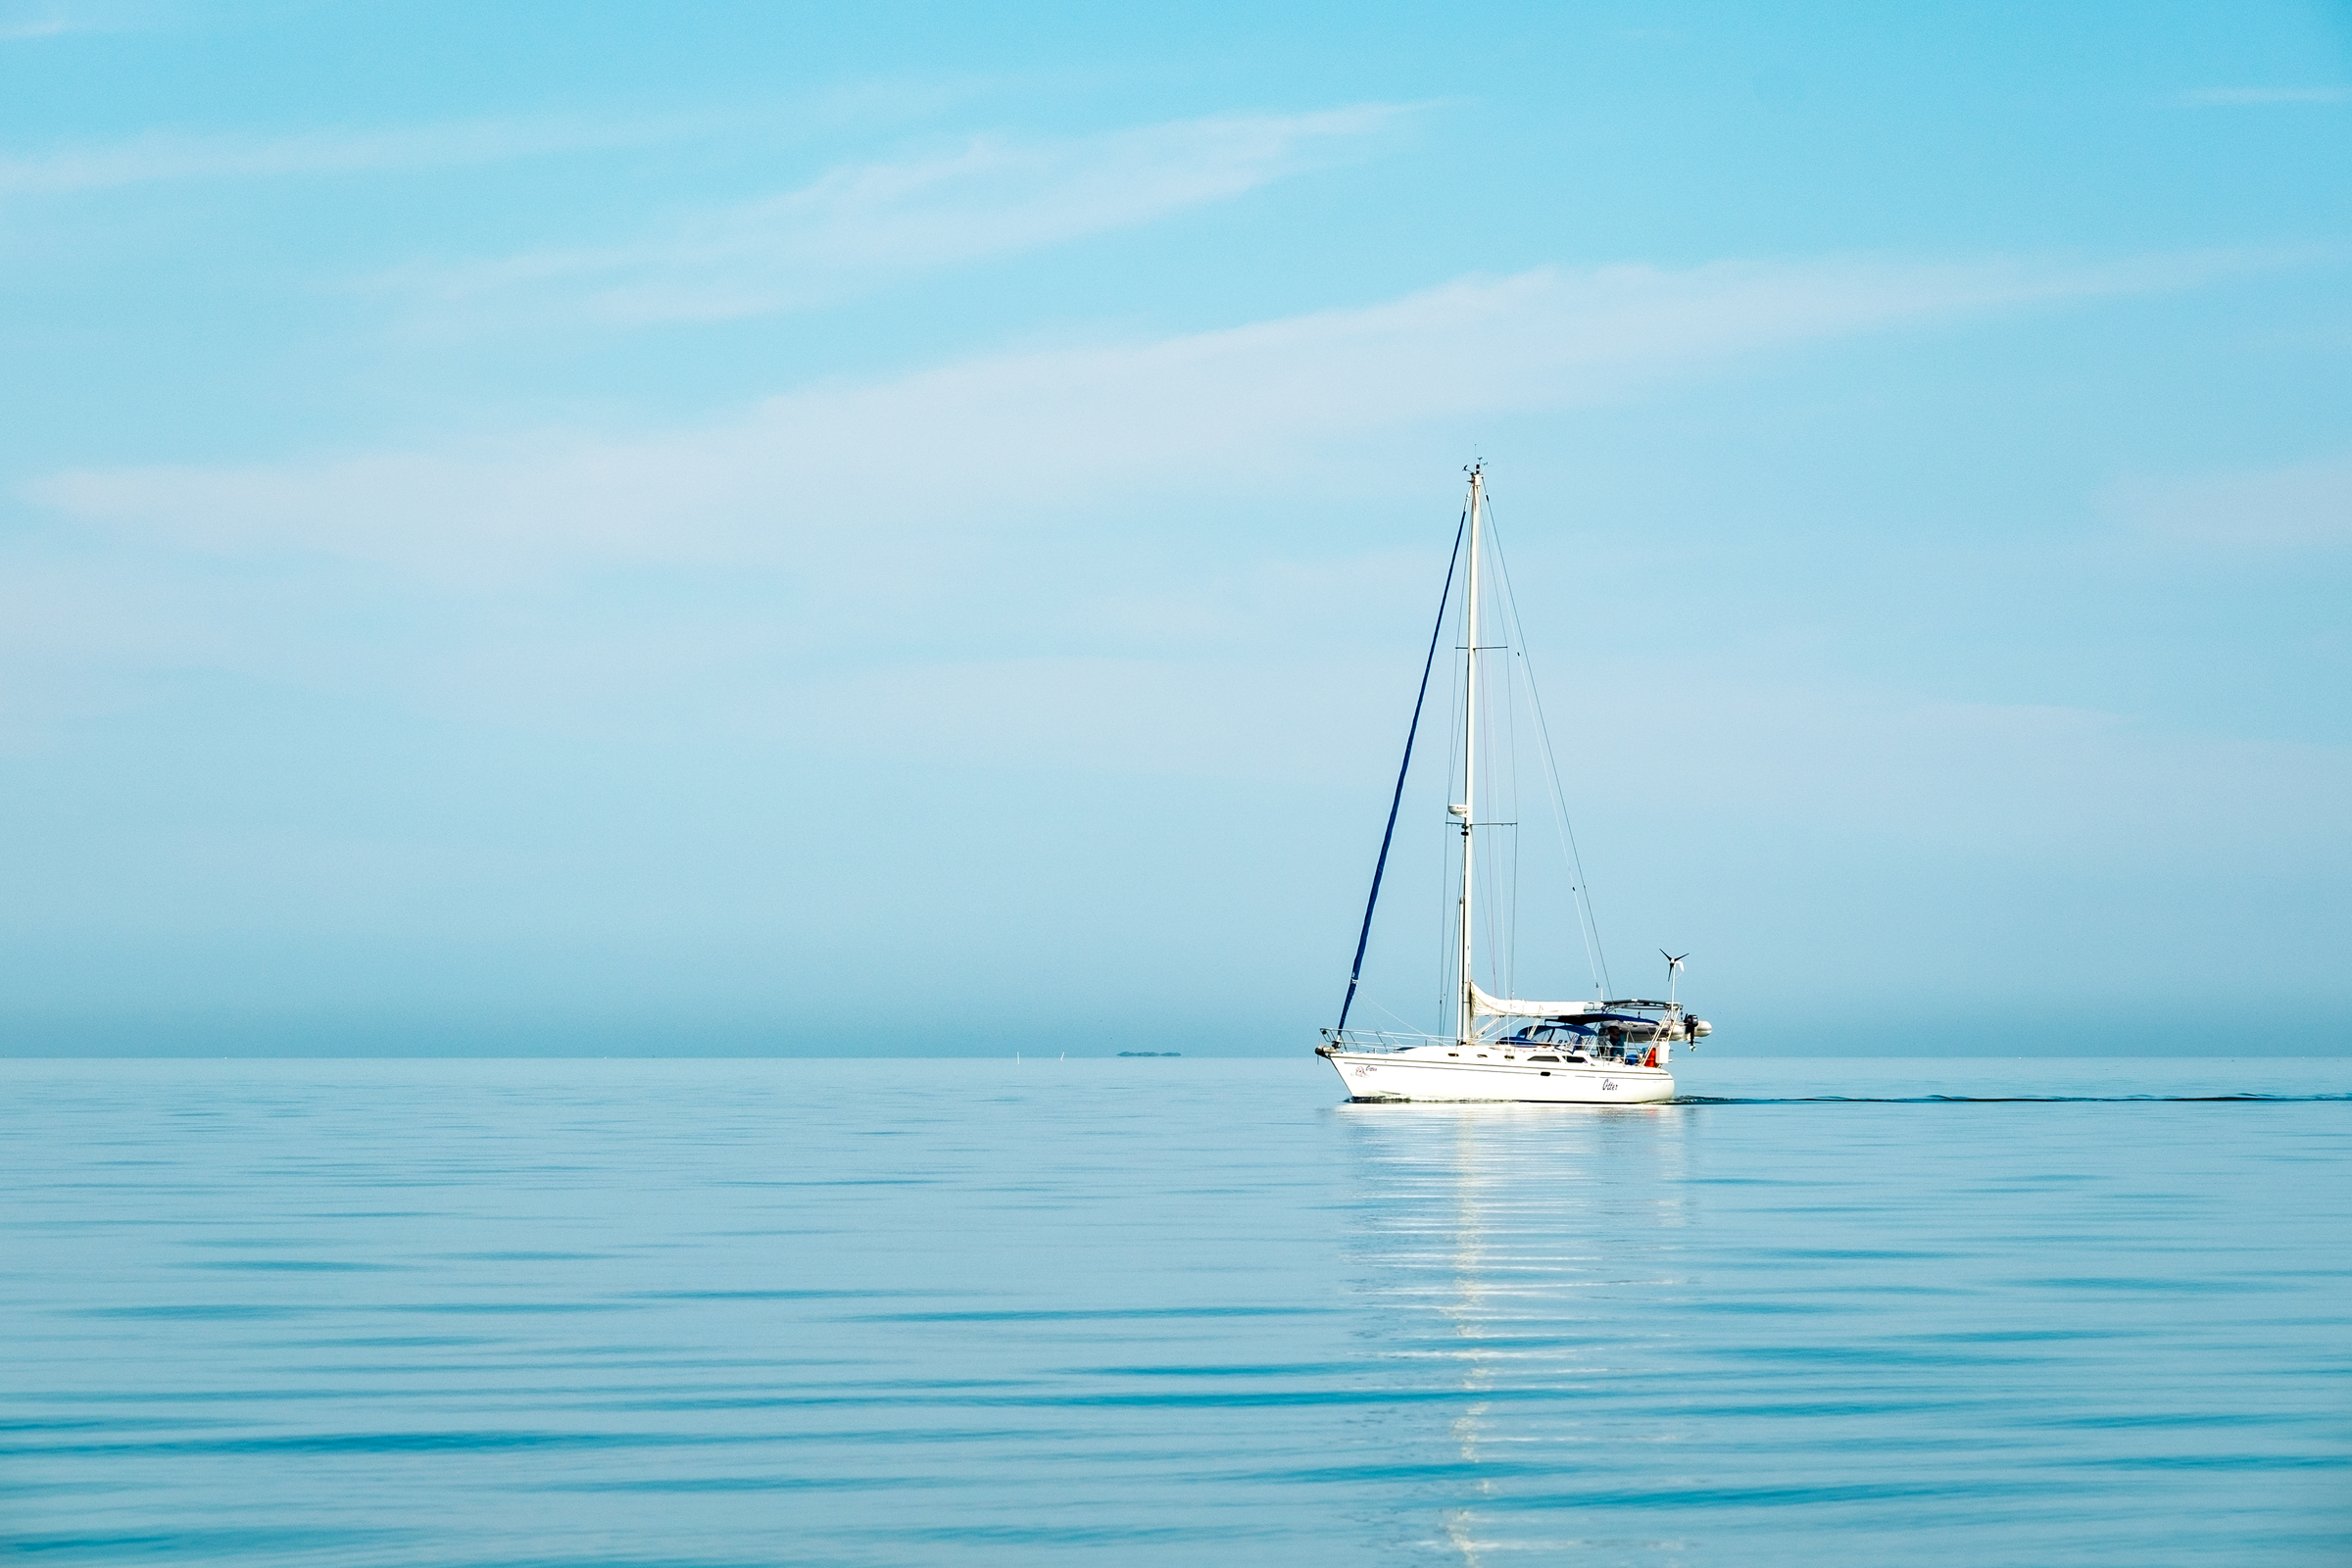 From small sailboats to large motor yachts, all kinds and sizes of boats take the trip to Boca Chita.